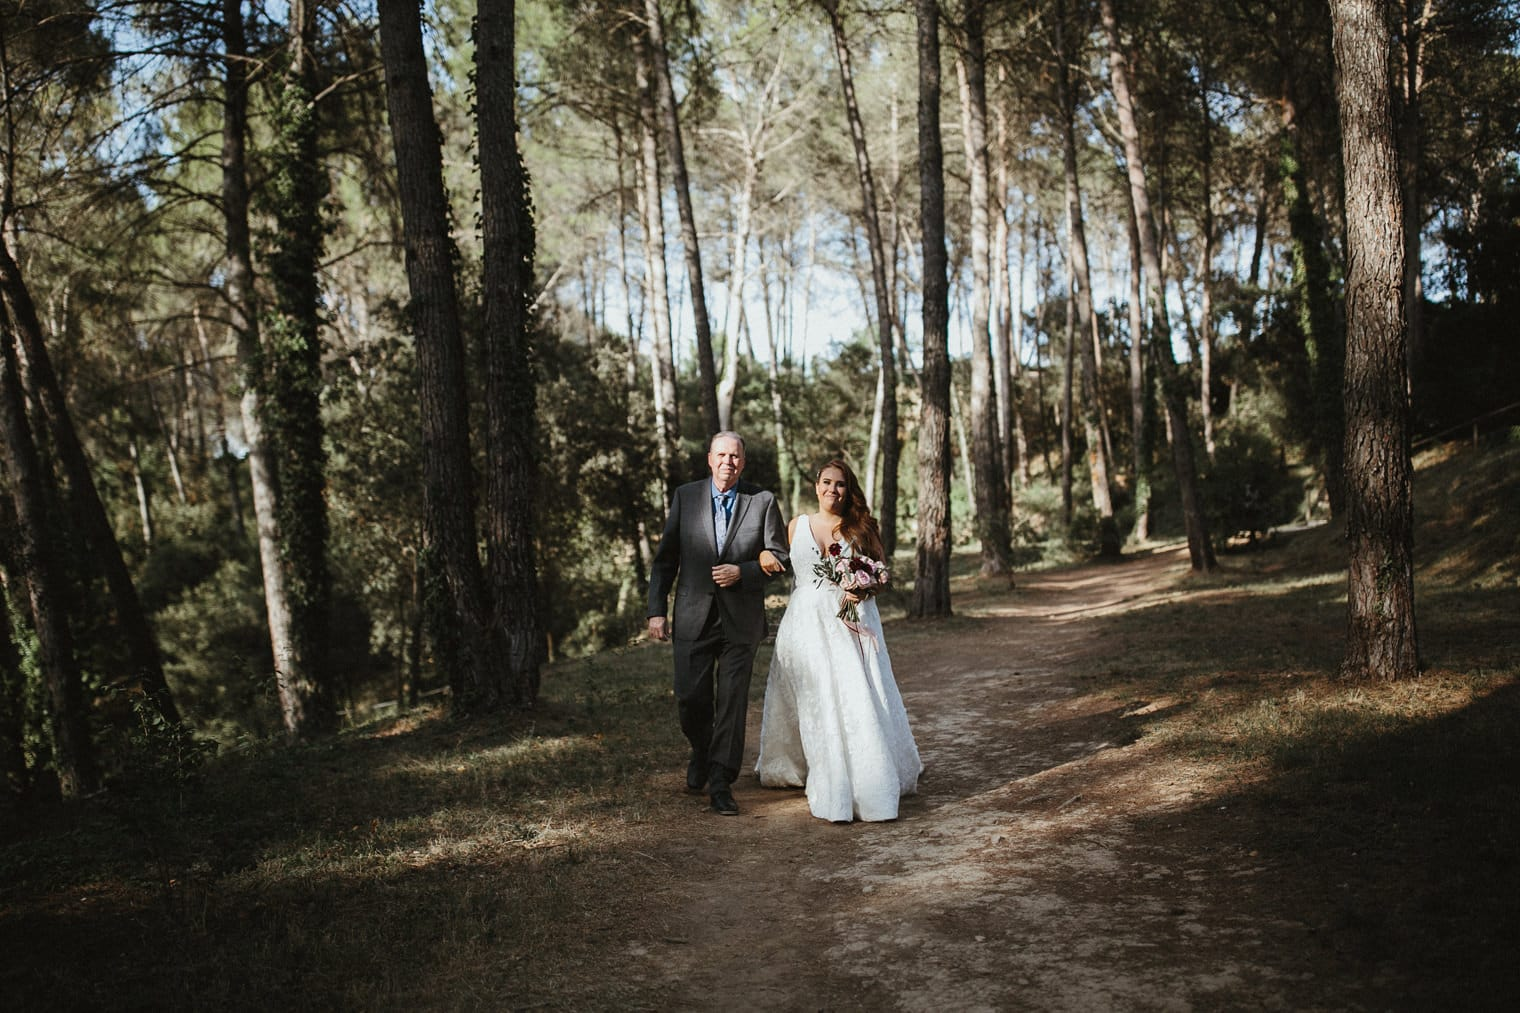 Father walking bride down the aisle in forest wedding